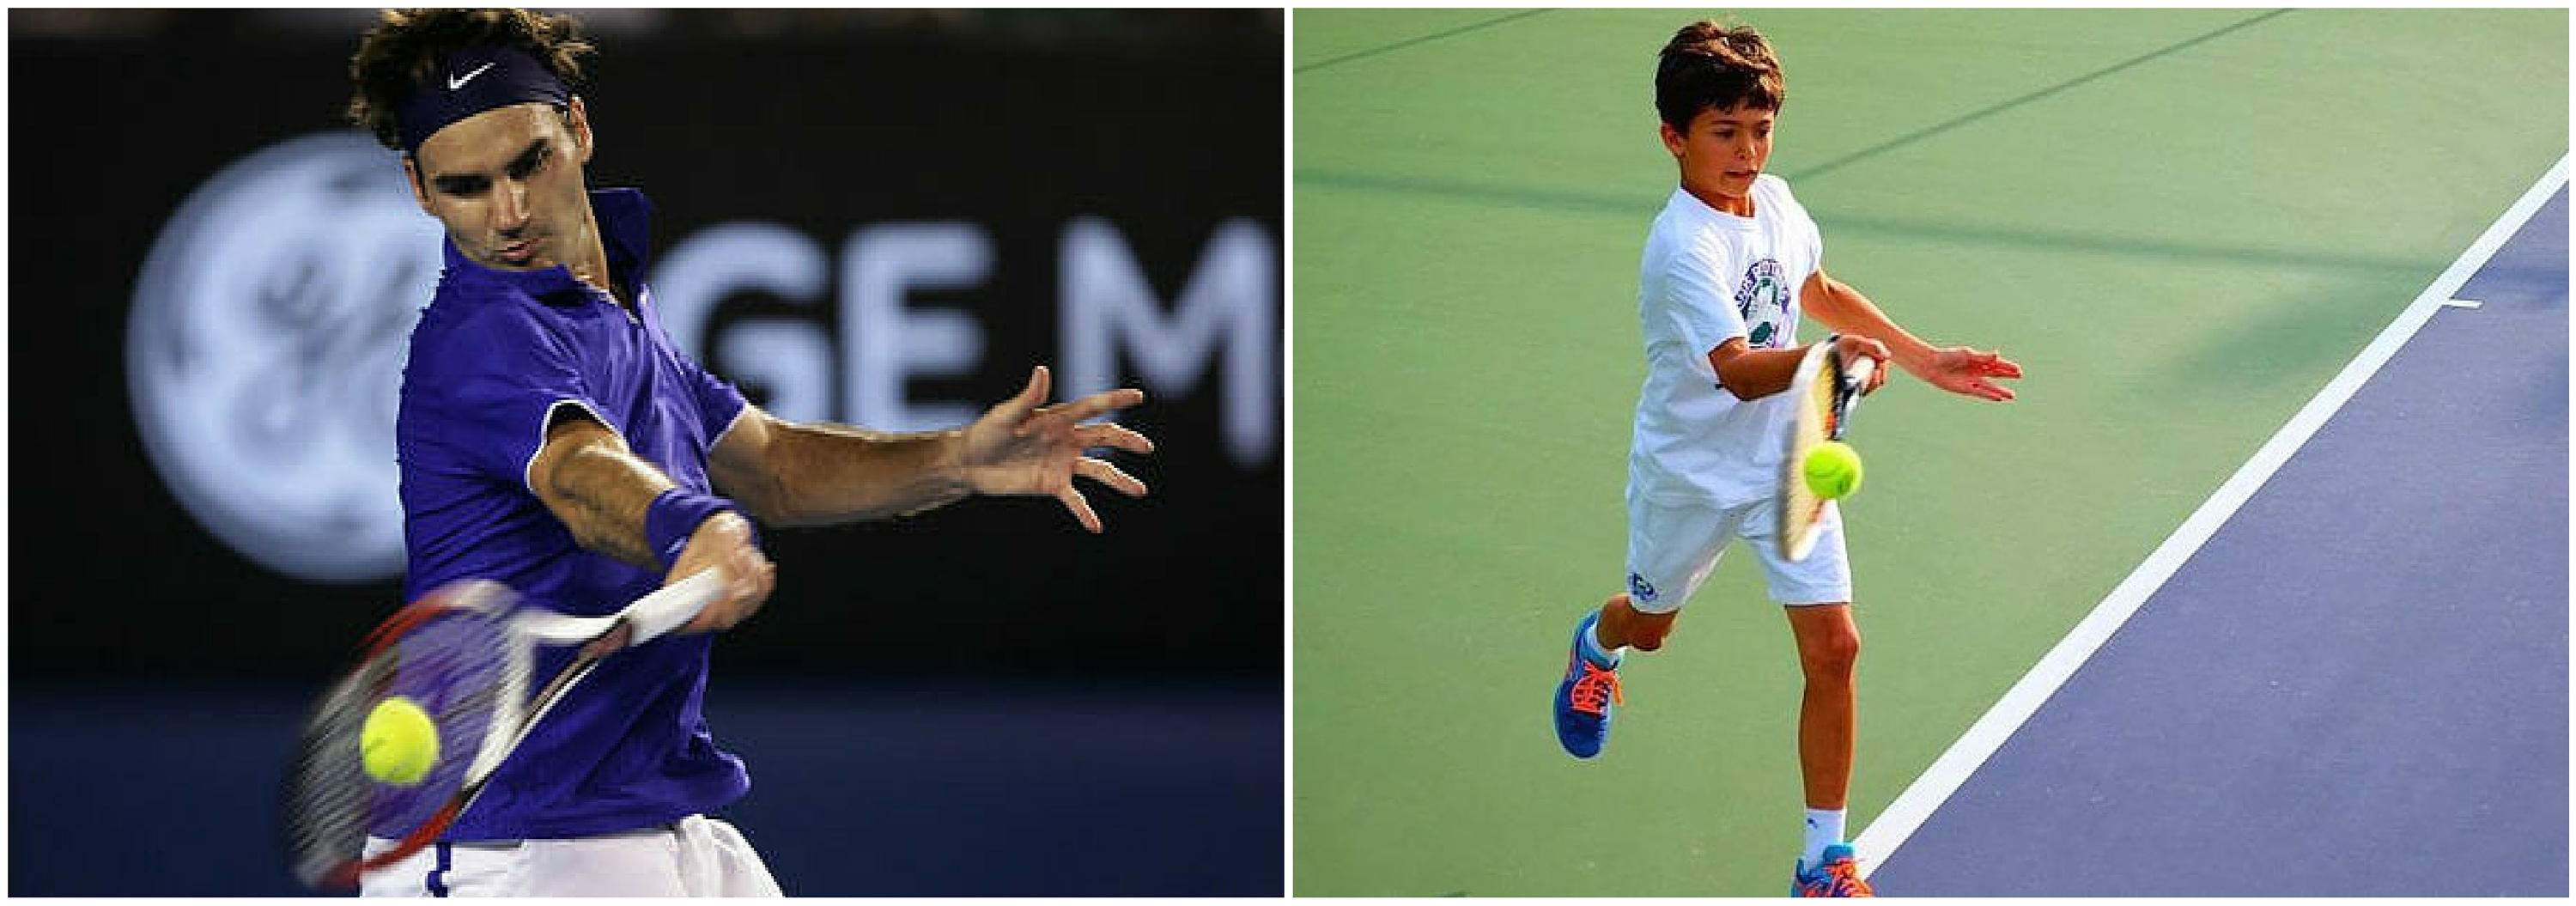 5 Signs Your Child Could Be The Next Roger Federer (or Serena Williams)